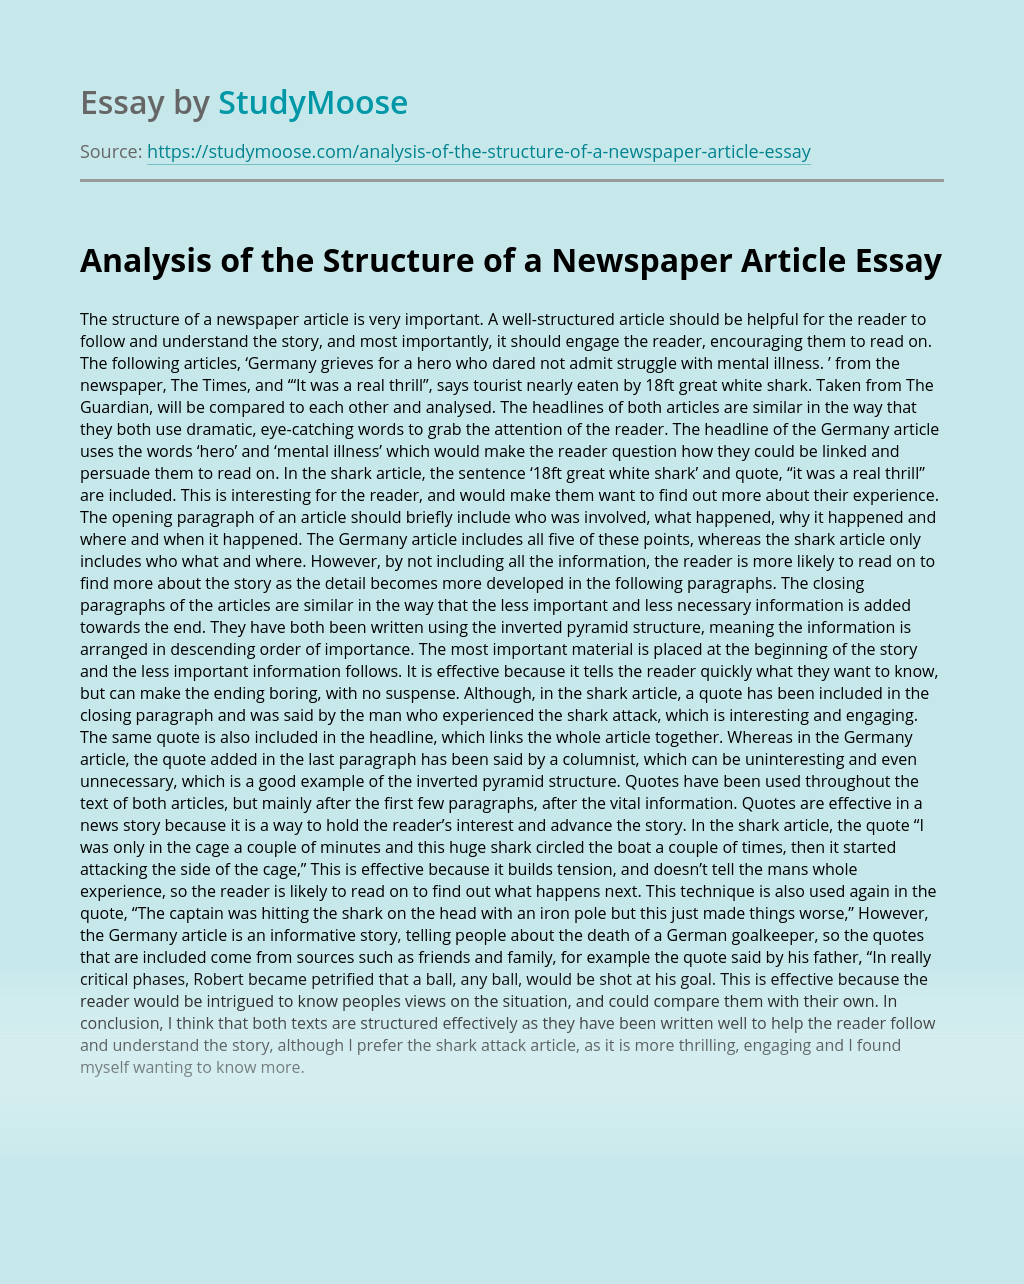 Analysis of the Structure of a Newspaper Article